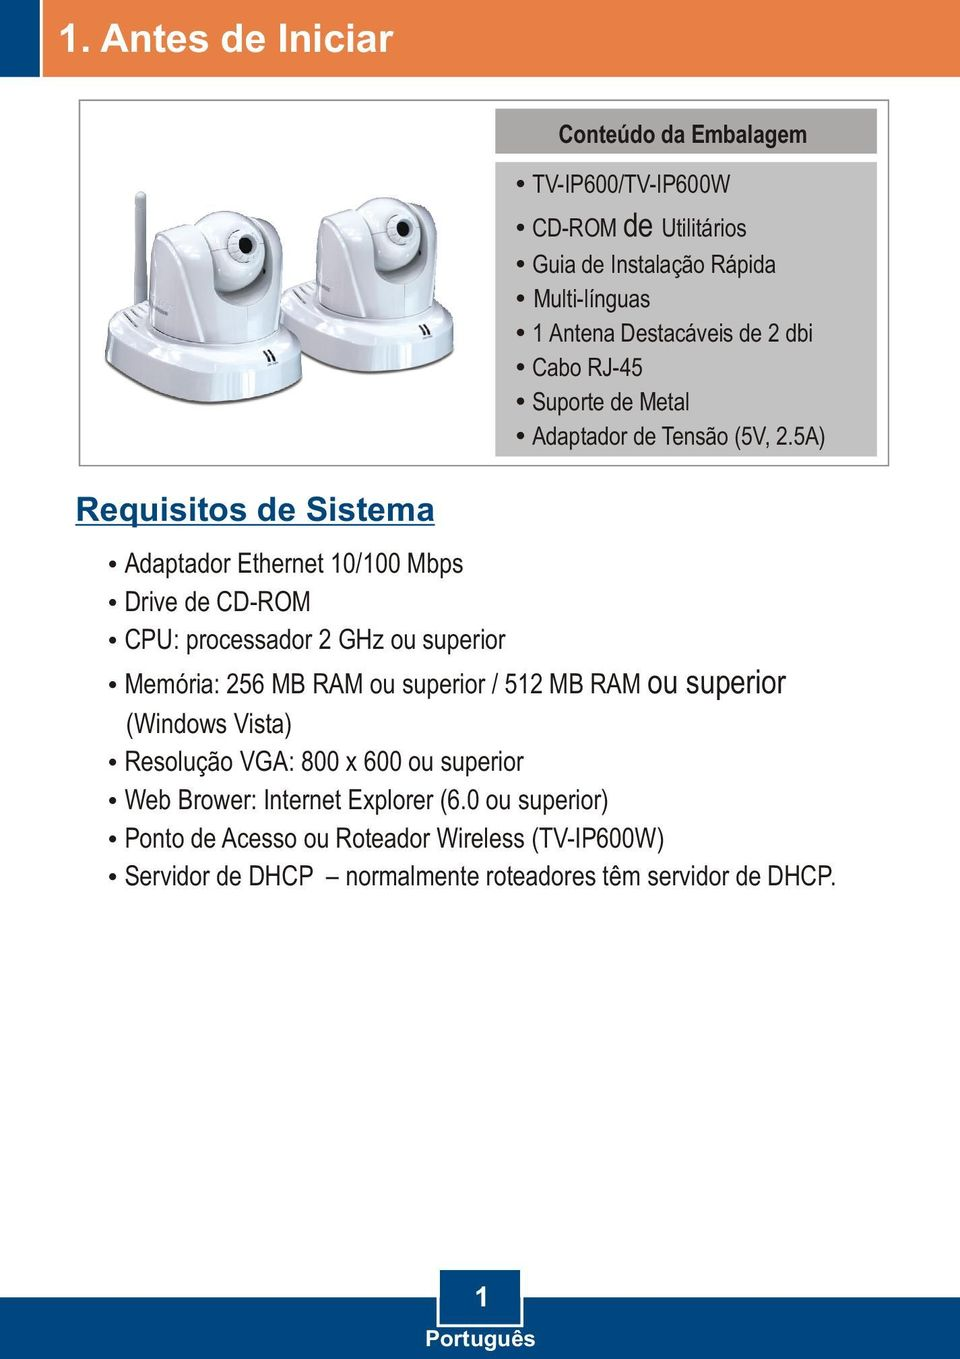 5A) Requisitos de Sistema Adaptador Ethernet 10/100 Mbps Drive de CD-ROM processador CPU: 2 GHz ou superior Memória: 256 MB RAM ou superior / 512